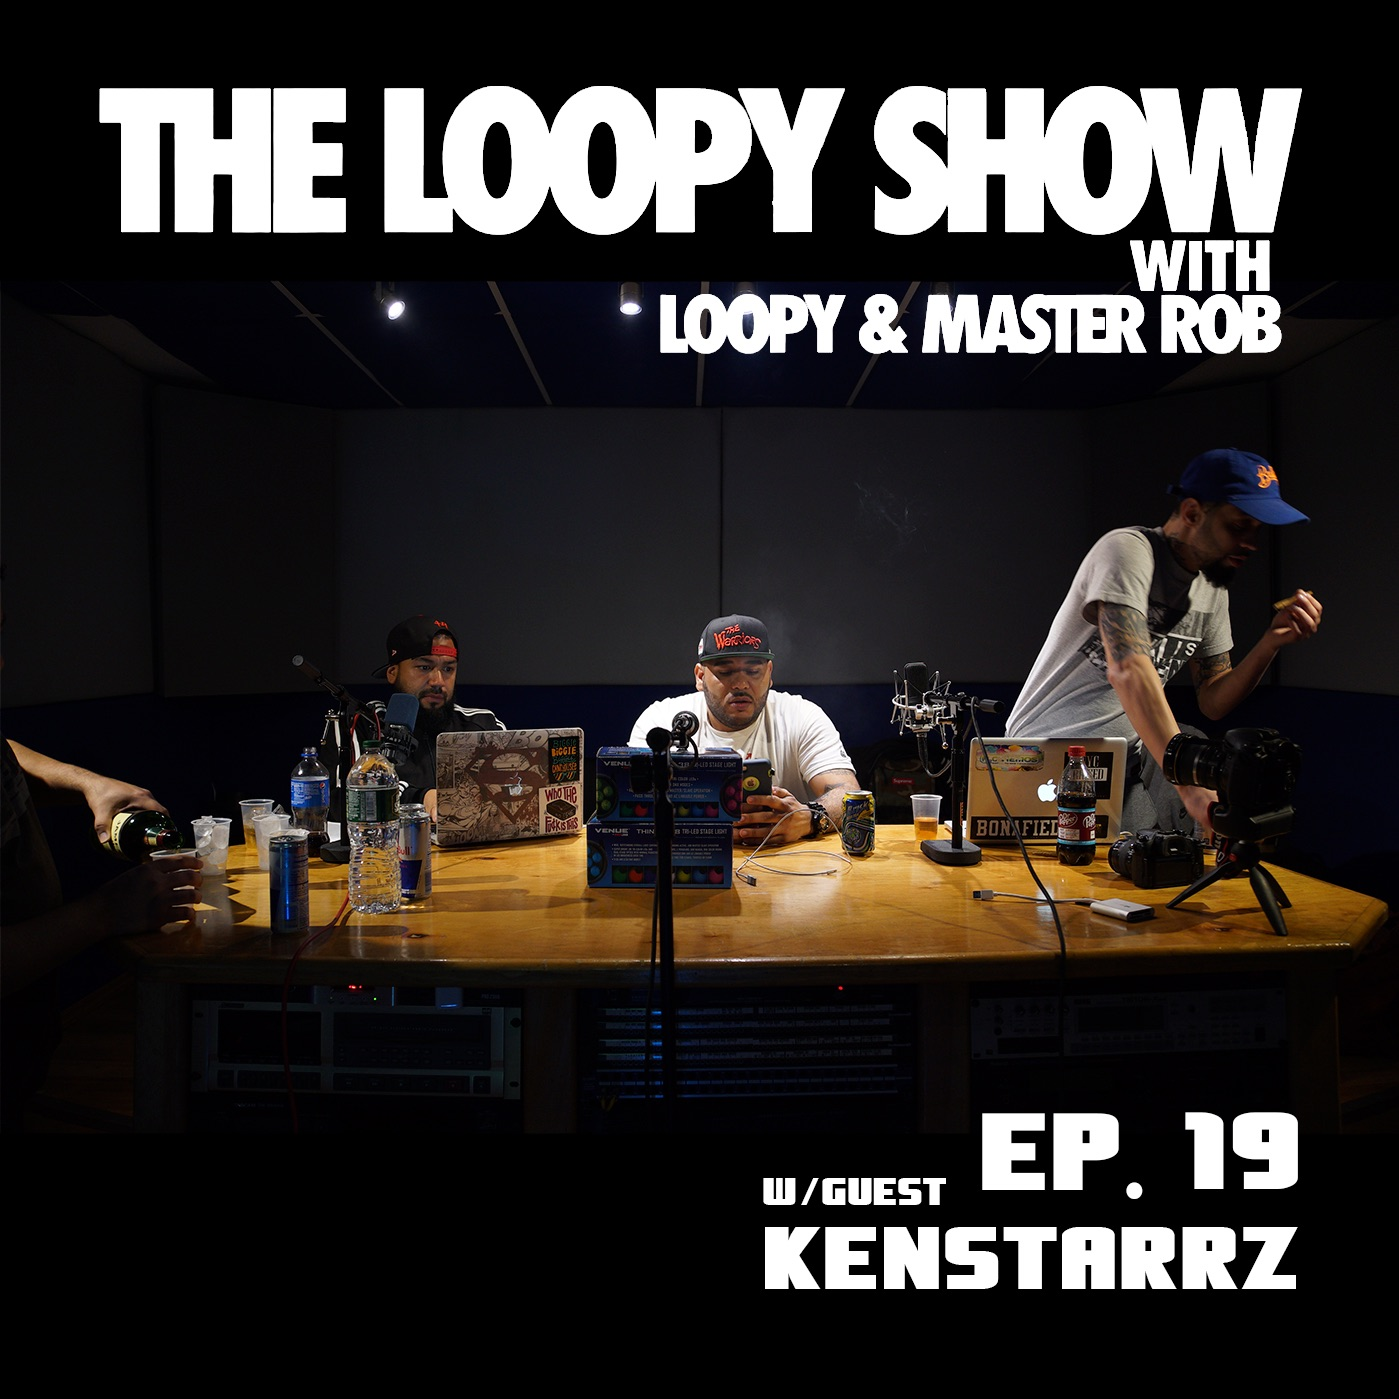 Ep  19 Loopy and Master Rob Chop it up w Ken Starrrz